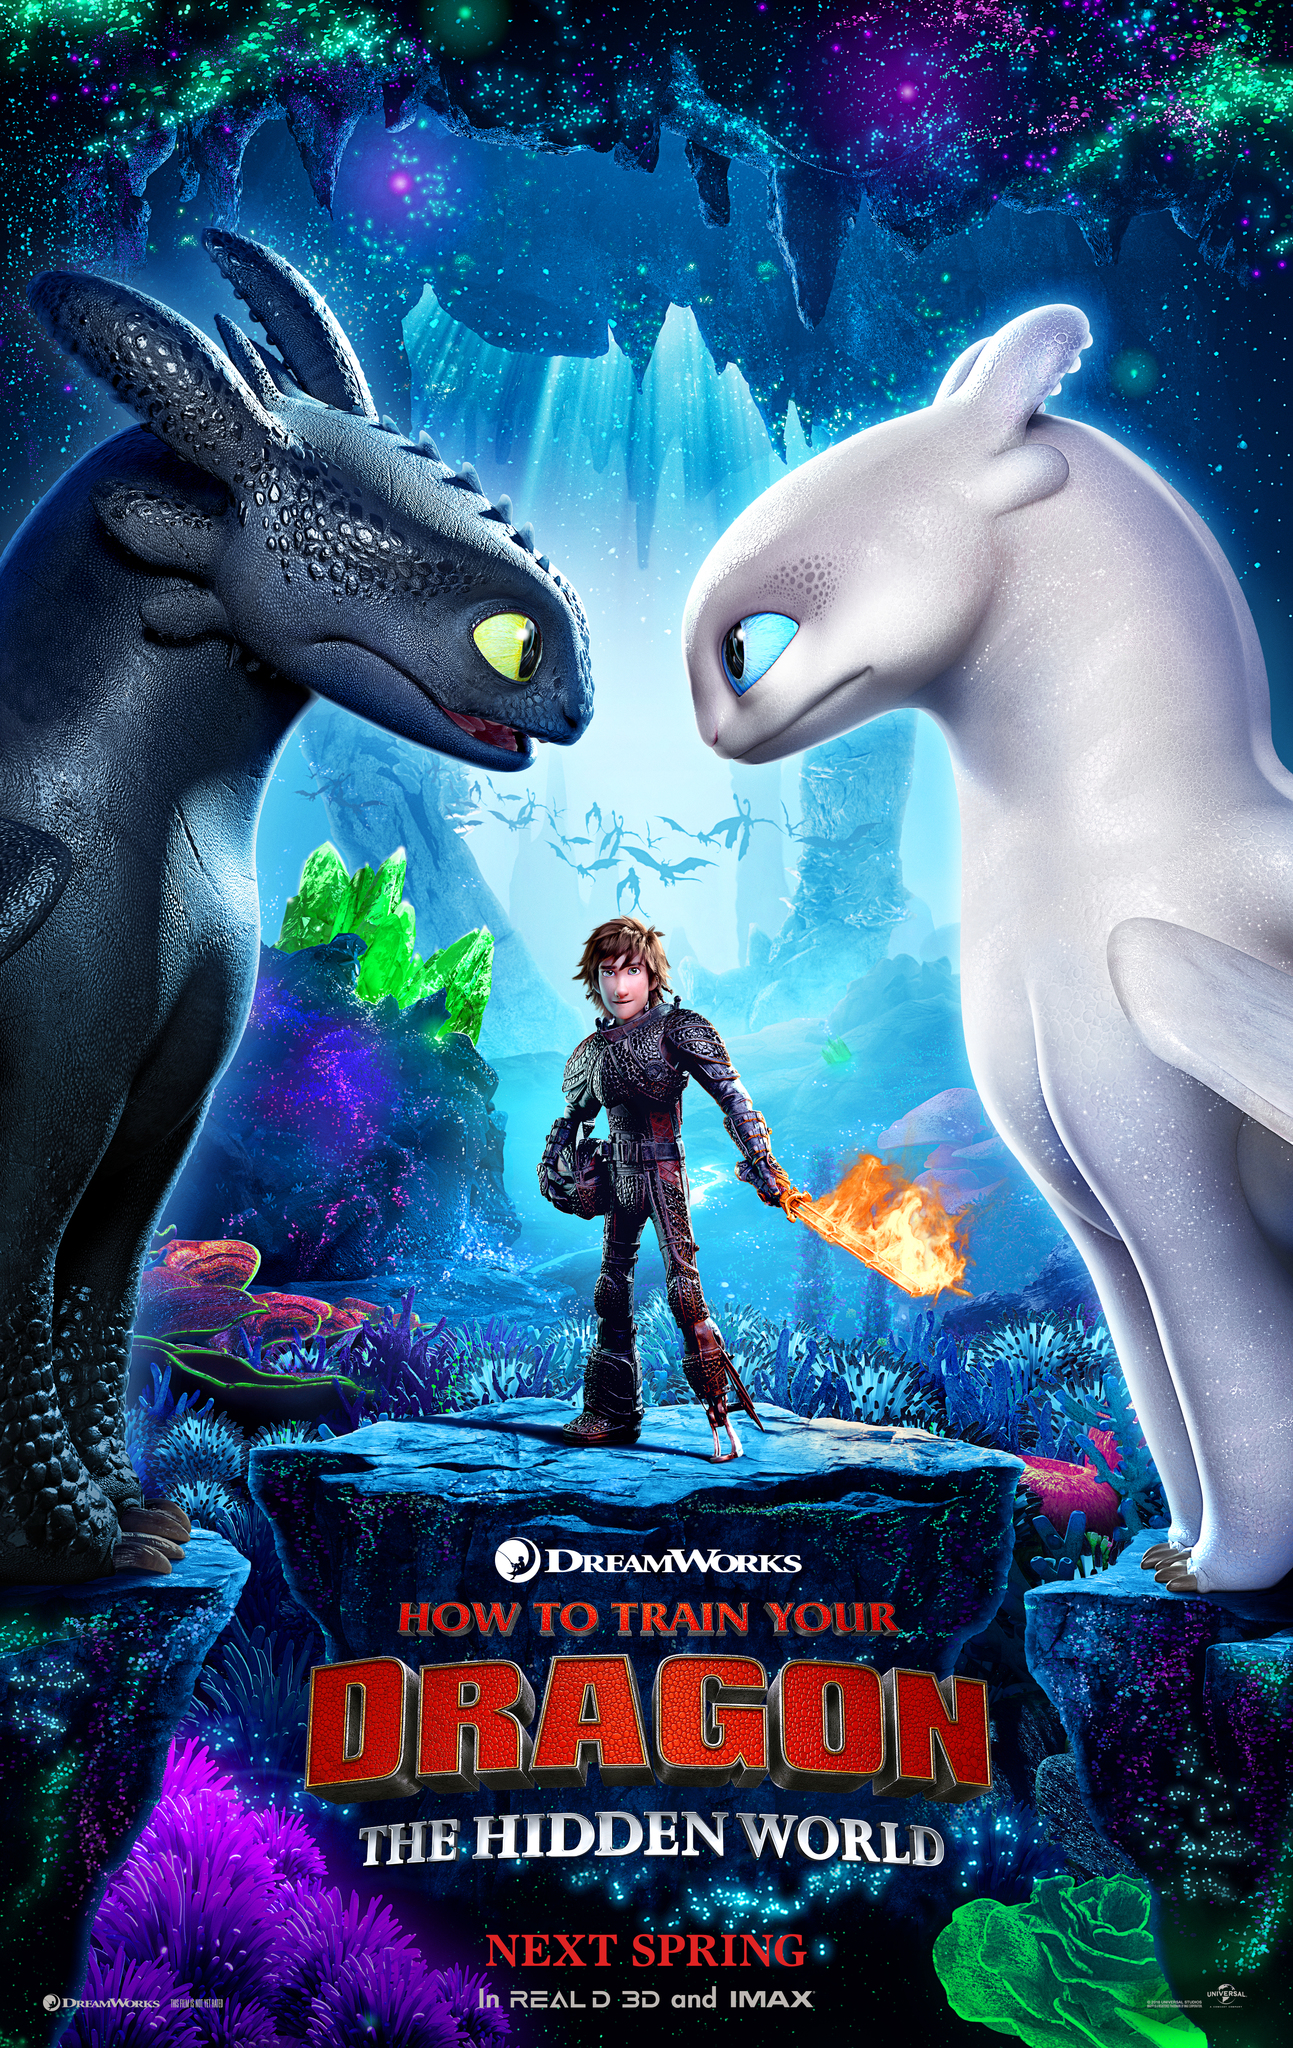 Jak vycvicit draka 3 / How to Train Your Dragon: The Hidden World (2019)(CZ) = CSFD 80%